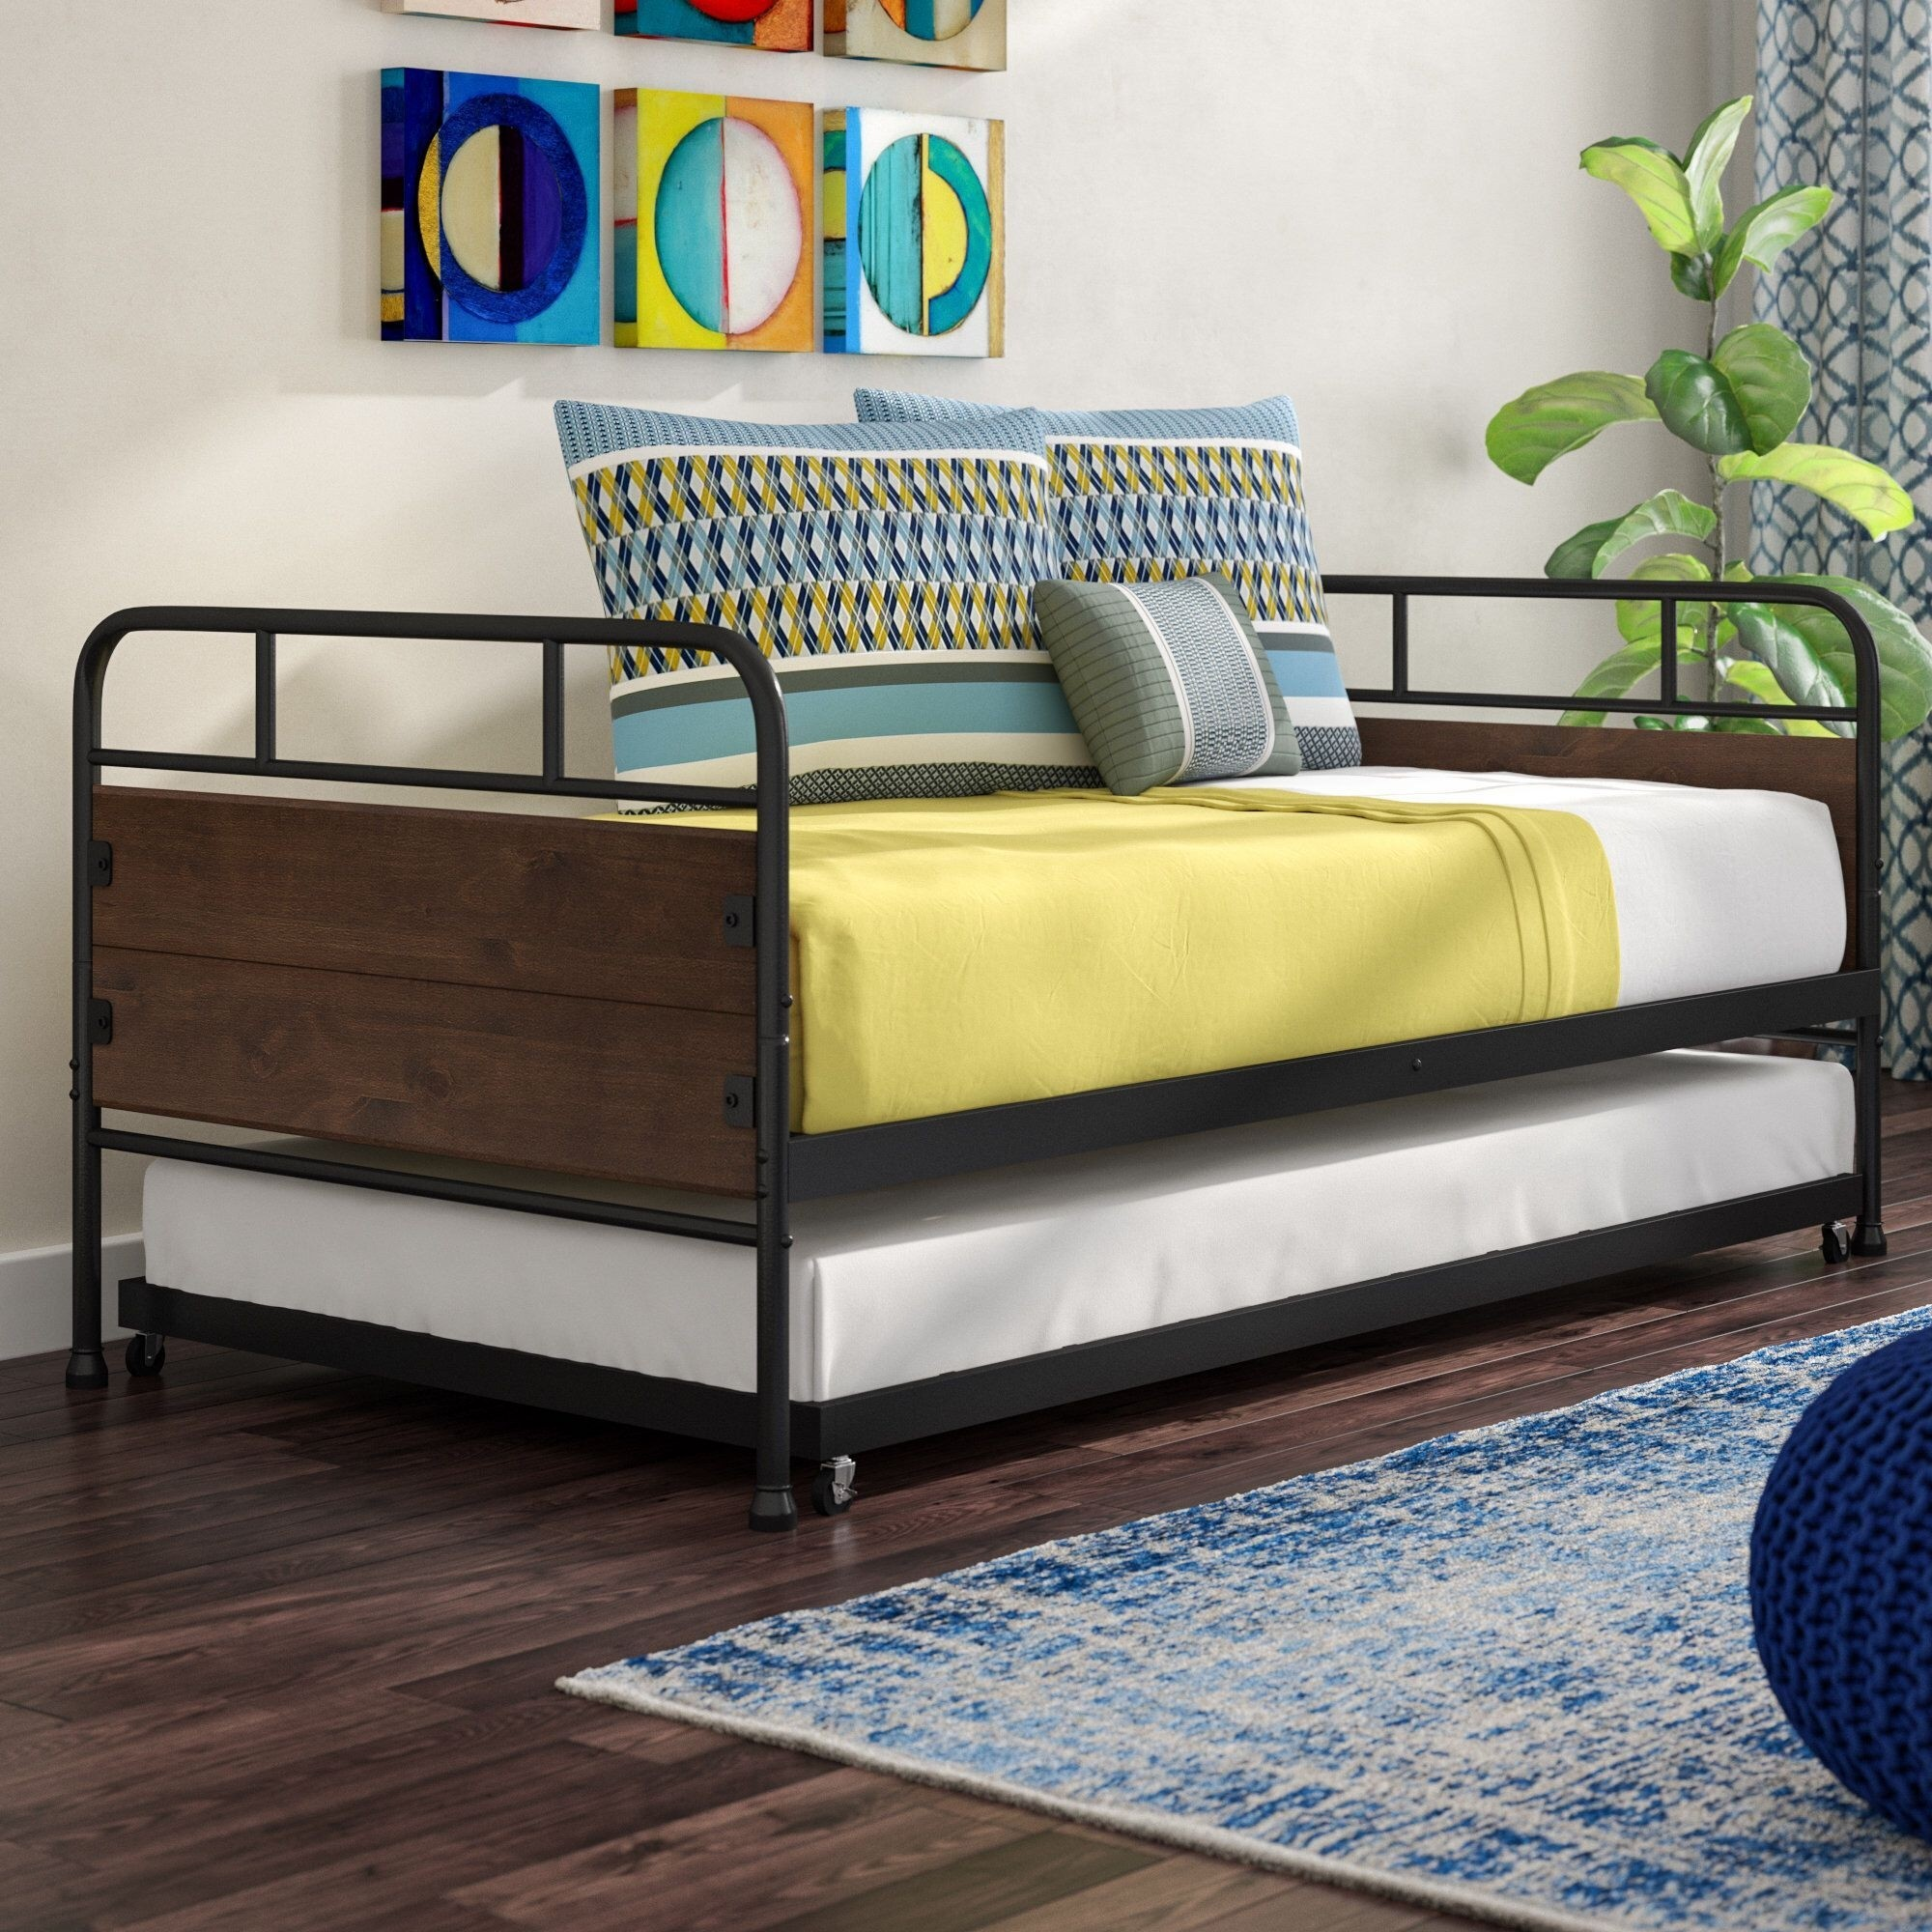 A Daybed With Pop-up Trundle That Will Last Your Forever